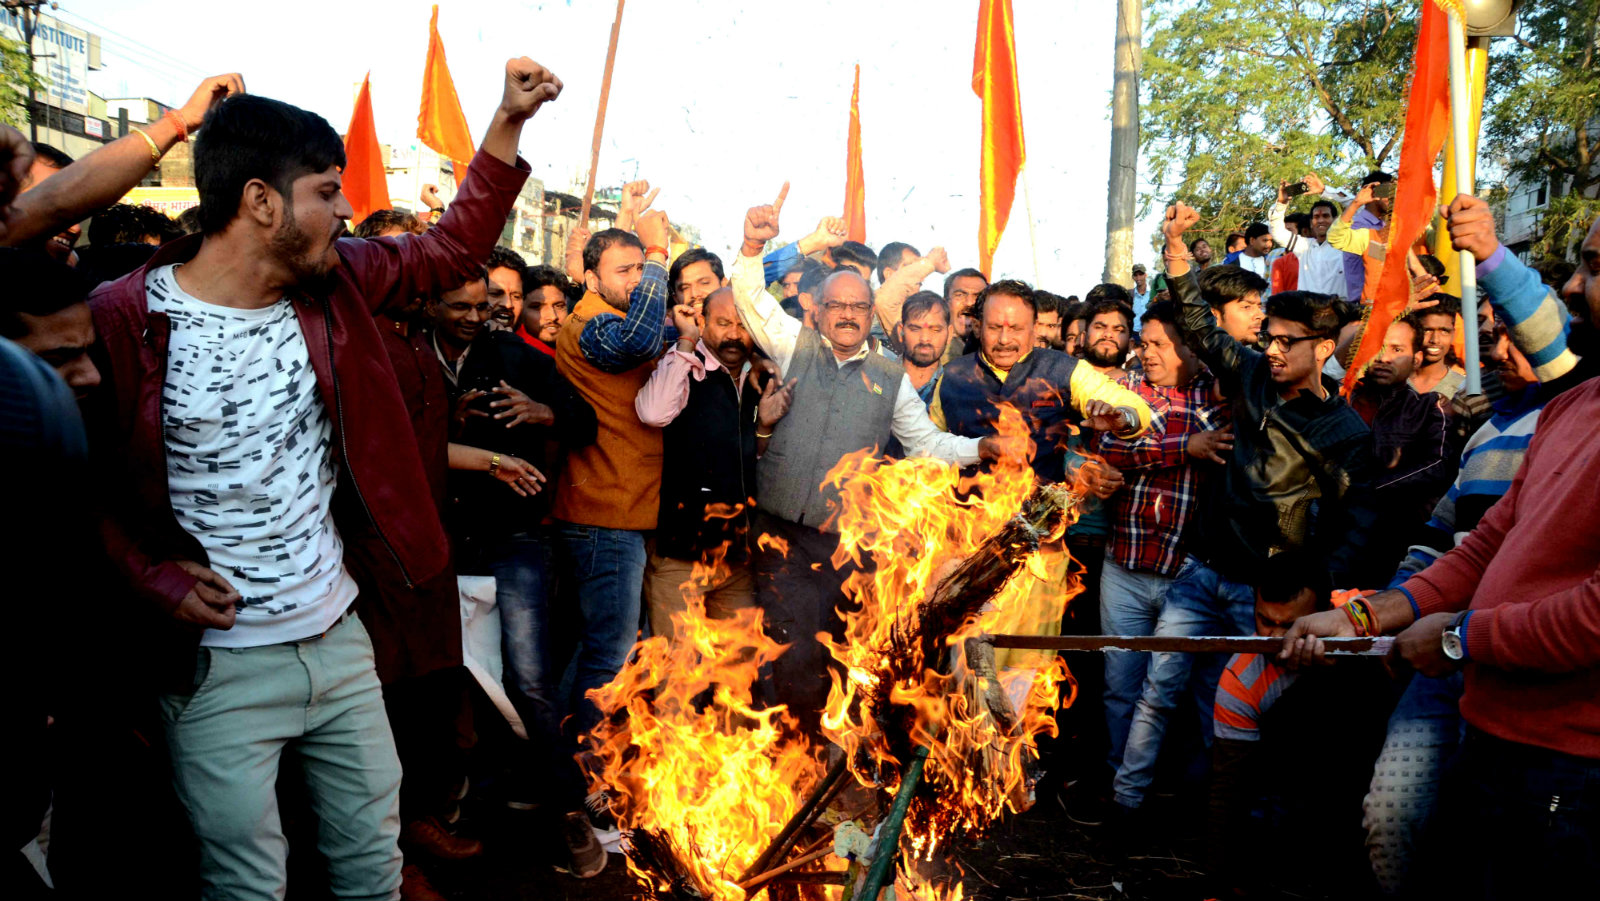 Indian Rajput community members protest and burn the effigy of Sanjay Leela Bhansali, the director of Bollywood movie 'Padmaavat', against the film's release, in Bhopal, India, 24 January 2018. According to media reports, the movie featuring Indian actress Deepika Padukone, Shahid Kapoor, and Ranveer Singh, is set for release on 25 January 2018, after the Central Board of Film Certification (CBFC) clearance. The movie is facing protest by Rajput groups in several states of India, with protesters claiming historical inaccuracies and called for the film to be banned. The period epic tells the story of a 14th century Hindu queen who belonged to the Rajput caste and Muslim ruler Alauddin Khilji. Protestors held various placards some of them read 'India will not tolerate insult of an Indian woman', 'In honor Rani Padmavati Jawar (self immolation), Integrated Nationalist Party in the field', and 'Fight is not of caste and religion, its for the virtuous women' in Hindi.